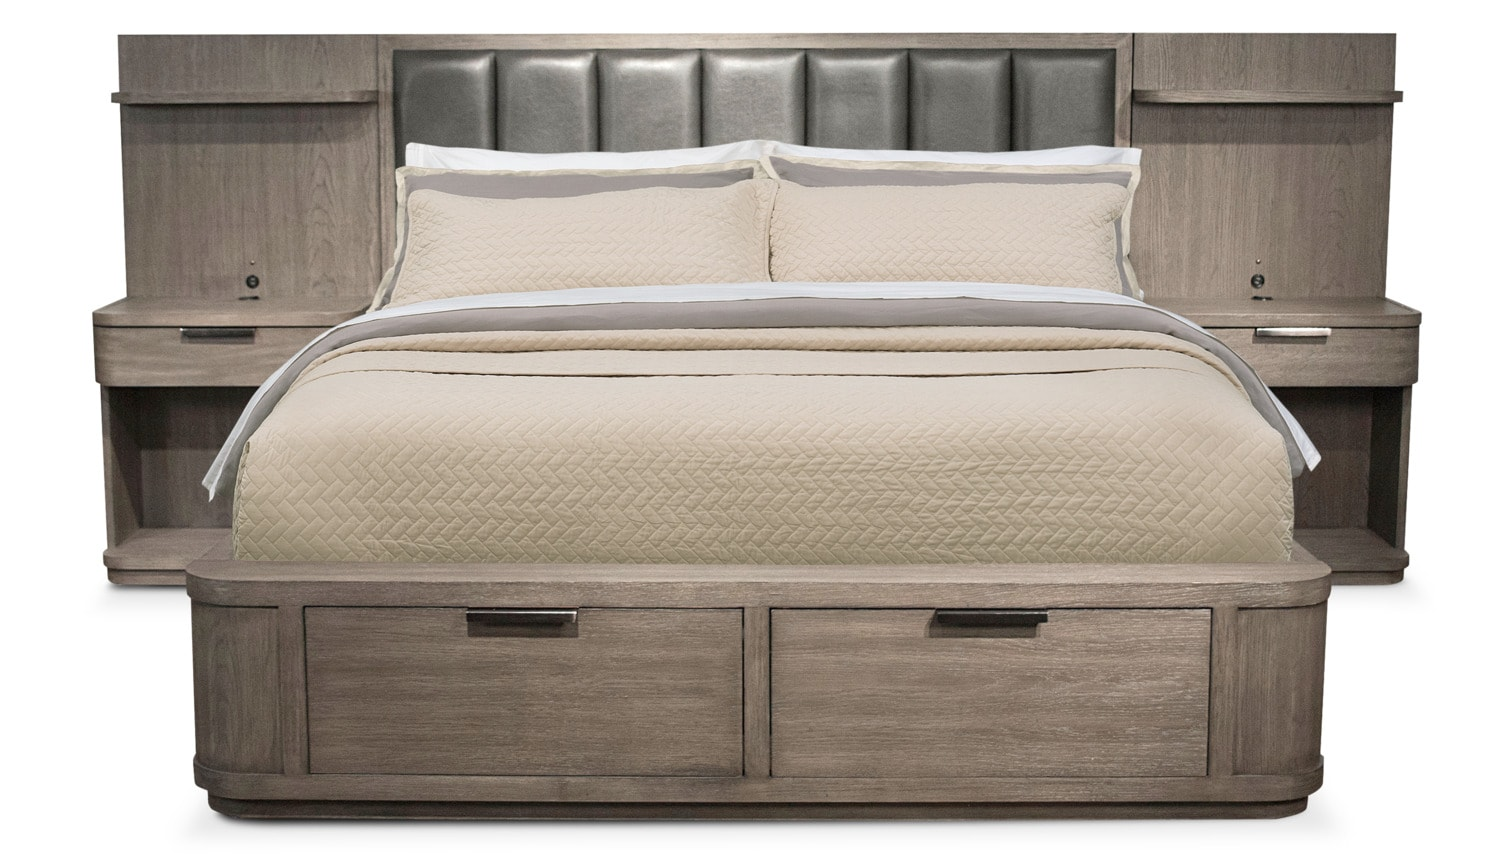 Malibu Low Upholstered Storage Wall Bed - Gray